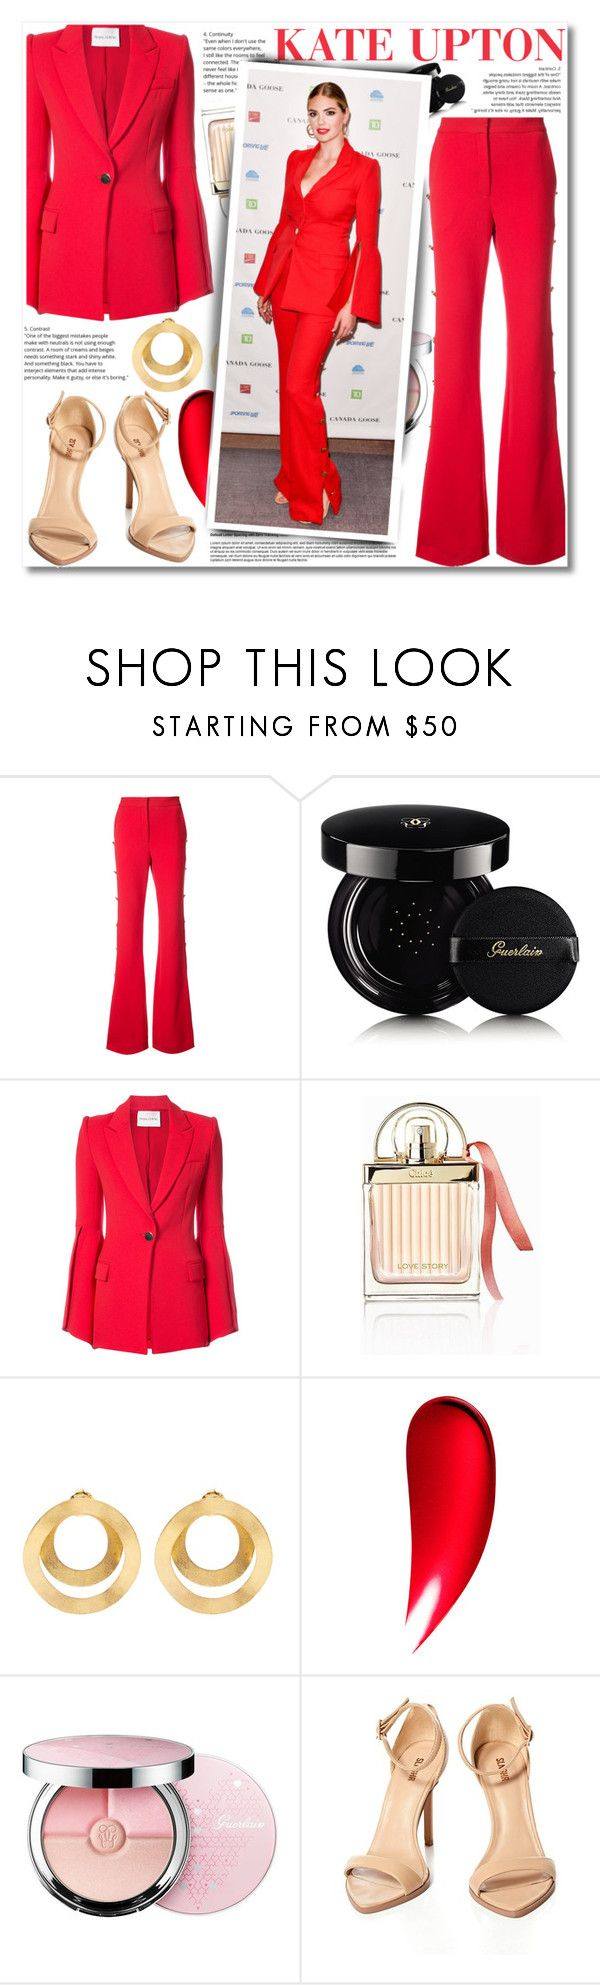 """""""Kate Upton - Lady in Red"""" by anne-mclayne-andreea-miclaus ❤ liked on Polyvore featuring Prabal Gurung, Guerlain, Chloé, Anissa Kermiche, Clé de Peau Beauté, GetTheLook, kateupton, CelebrityStyle and ladyinred"""